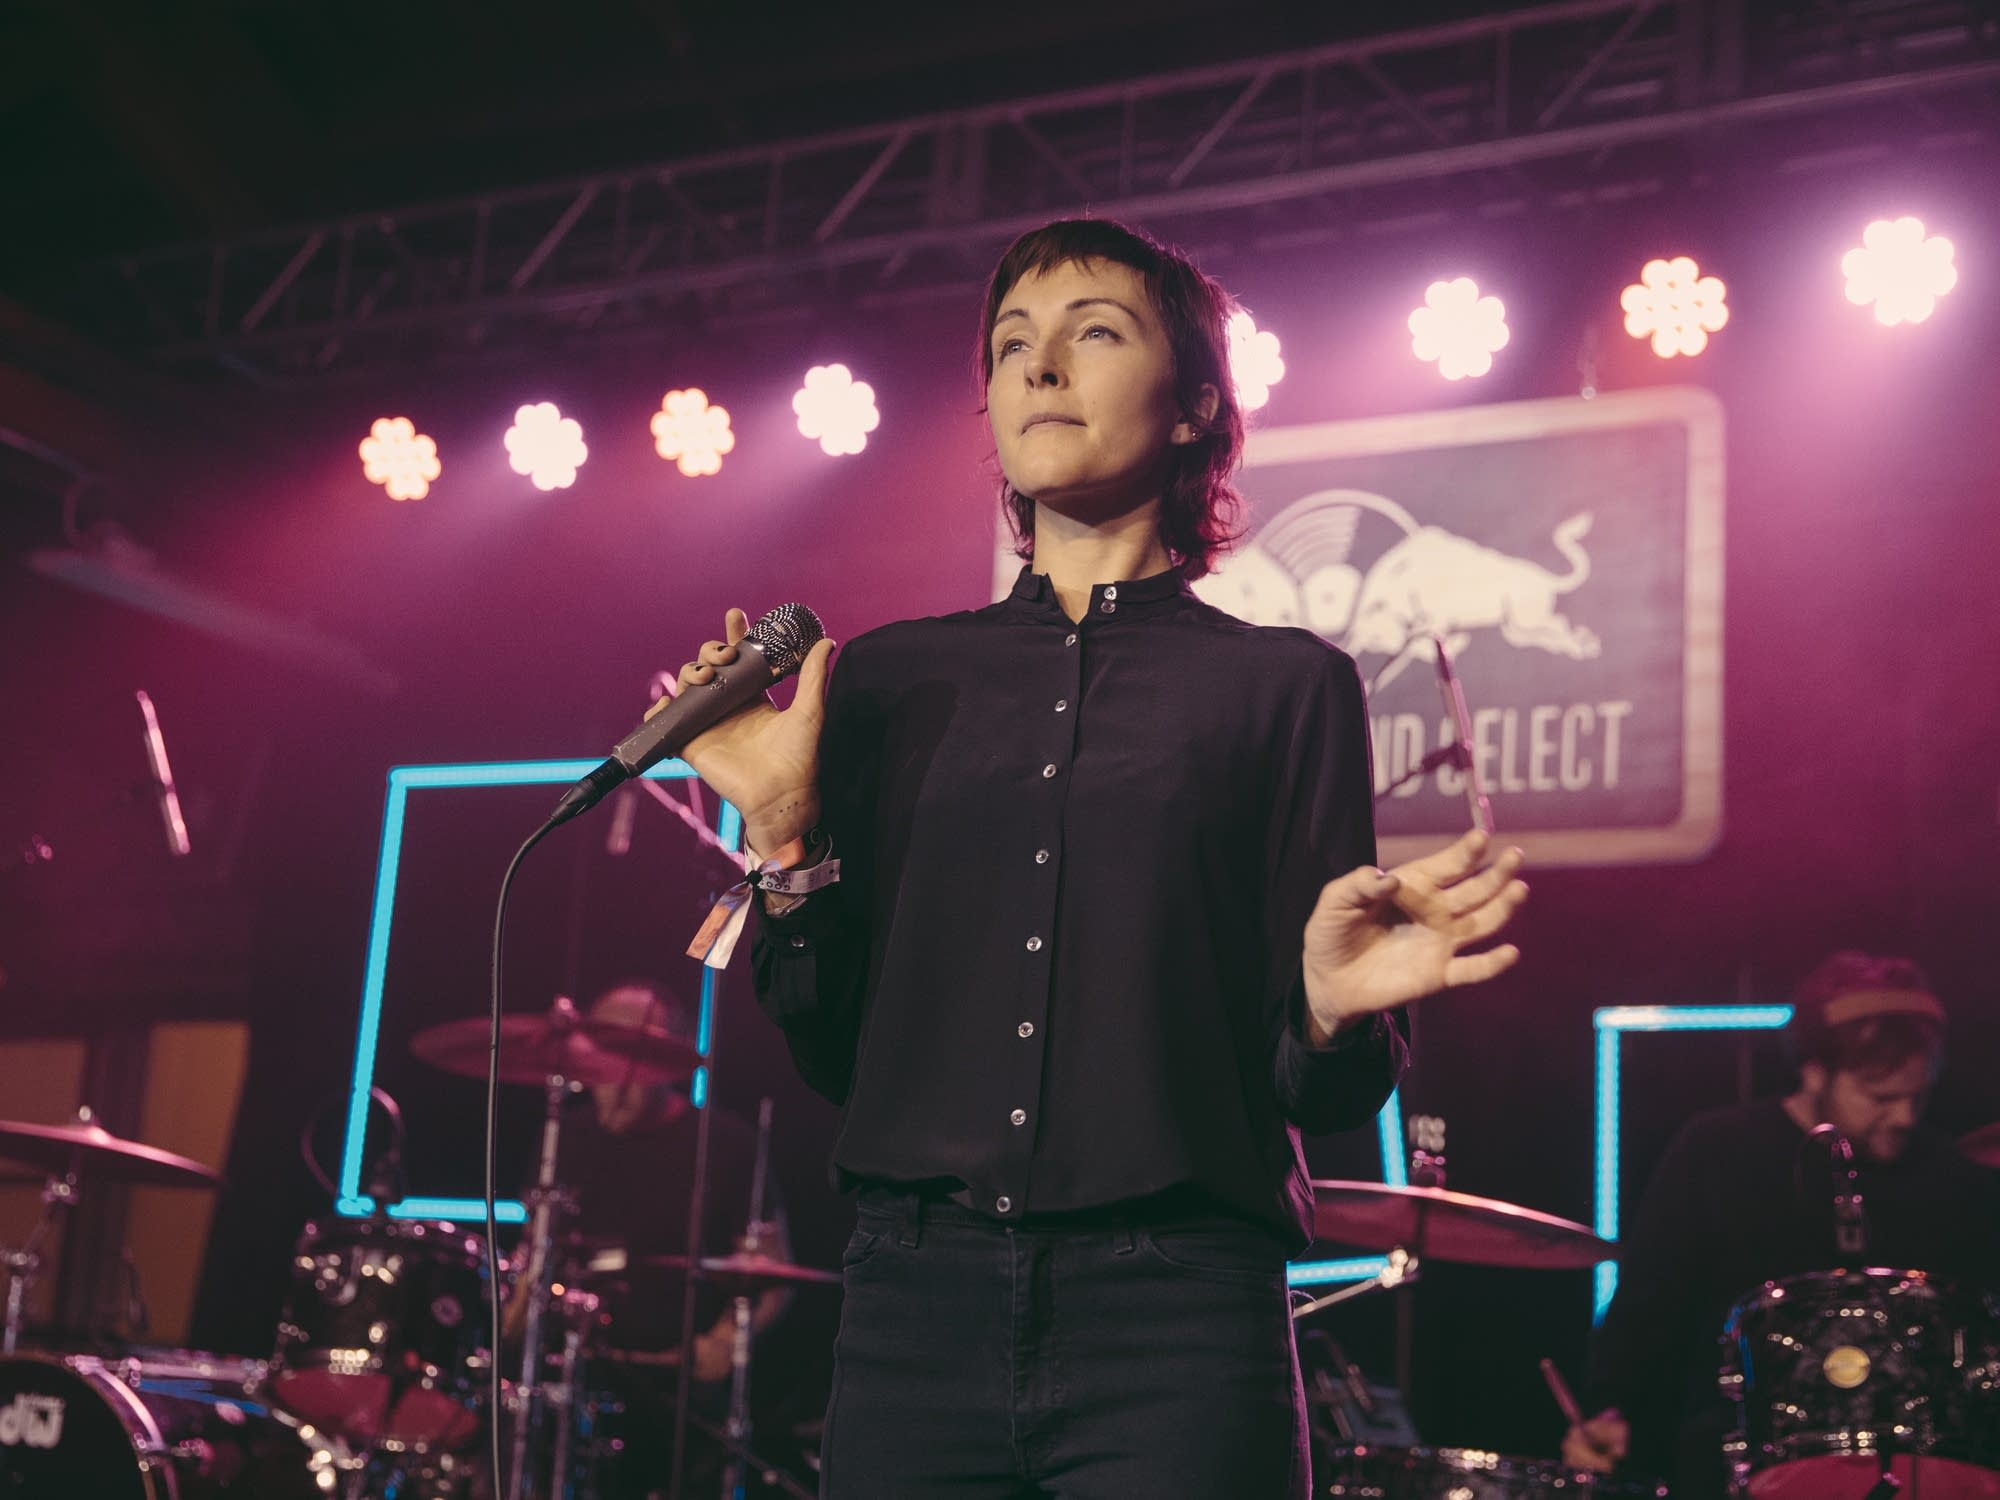 Polica perform at House of Vans in Chicago